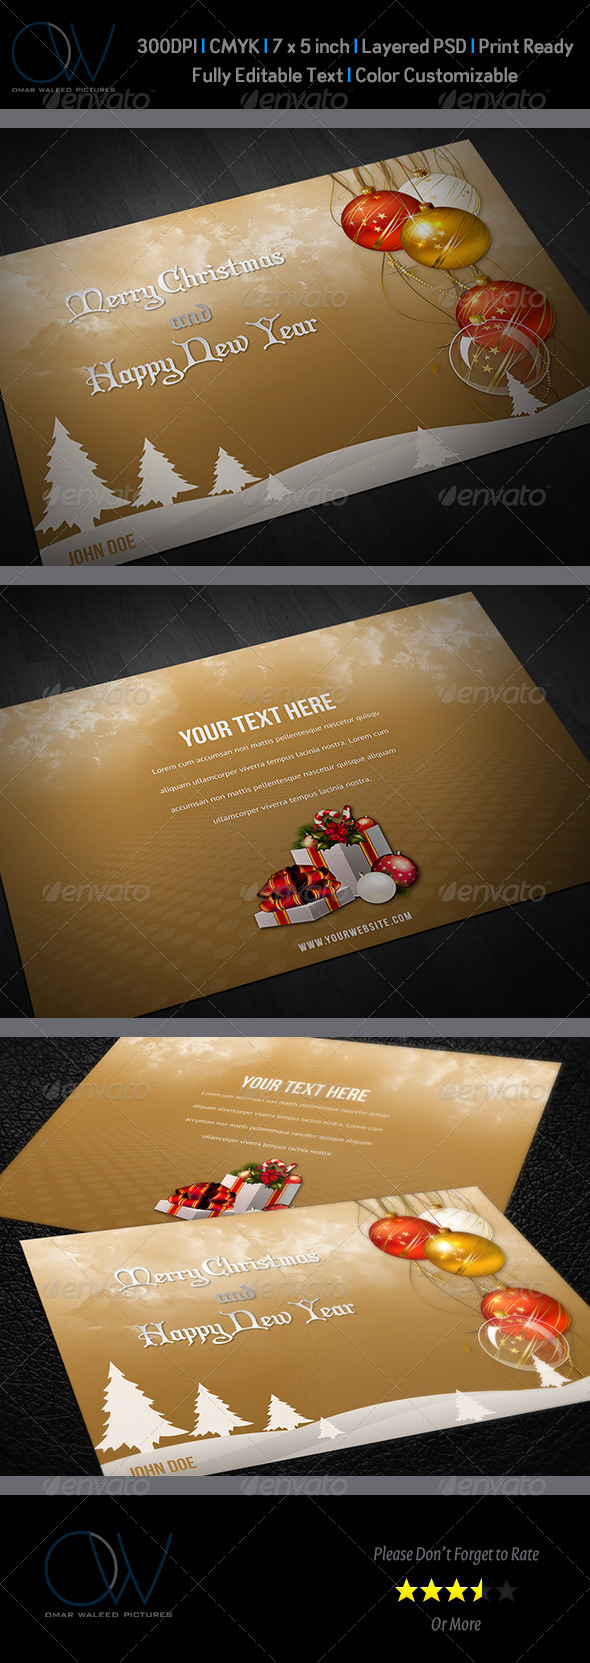 Christmas and New Year Greeting Card Vol.2 - Greeting Cards Cards & Invites